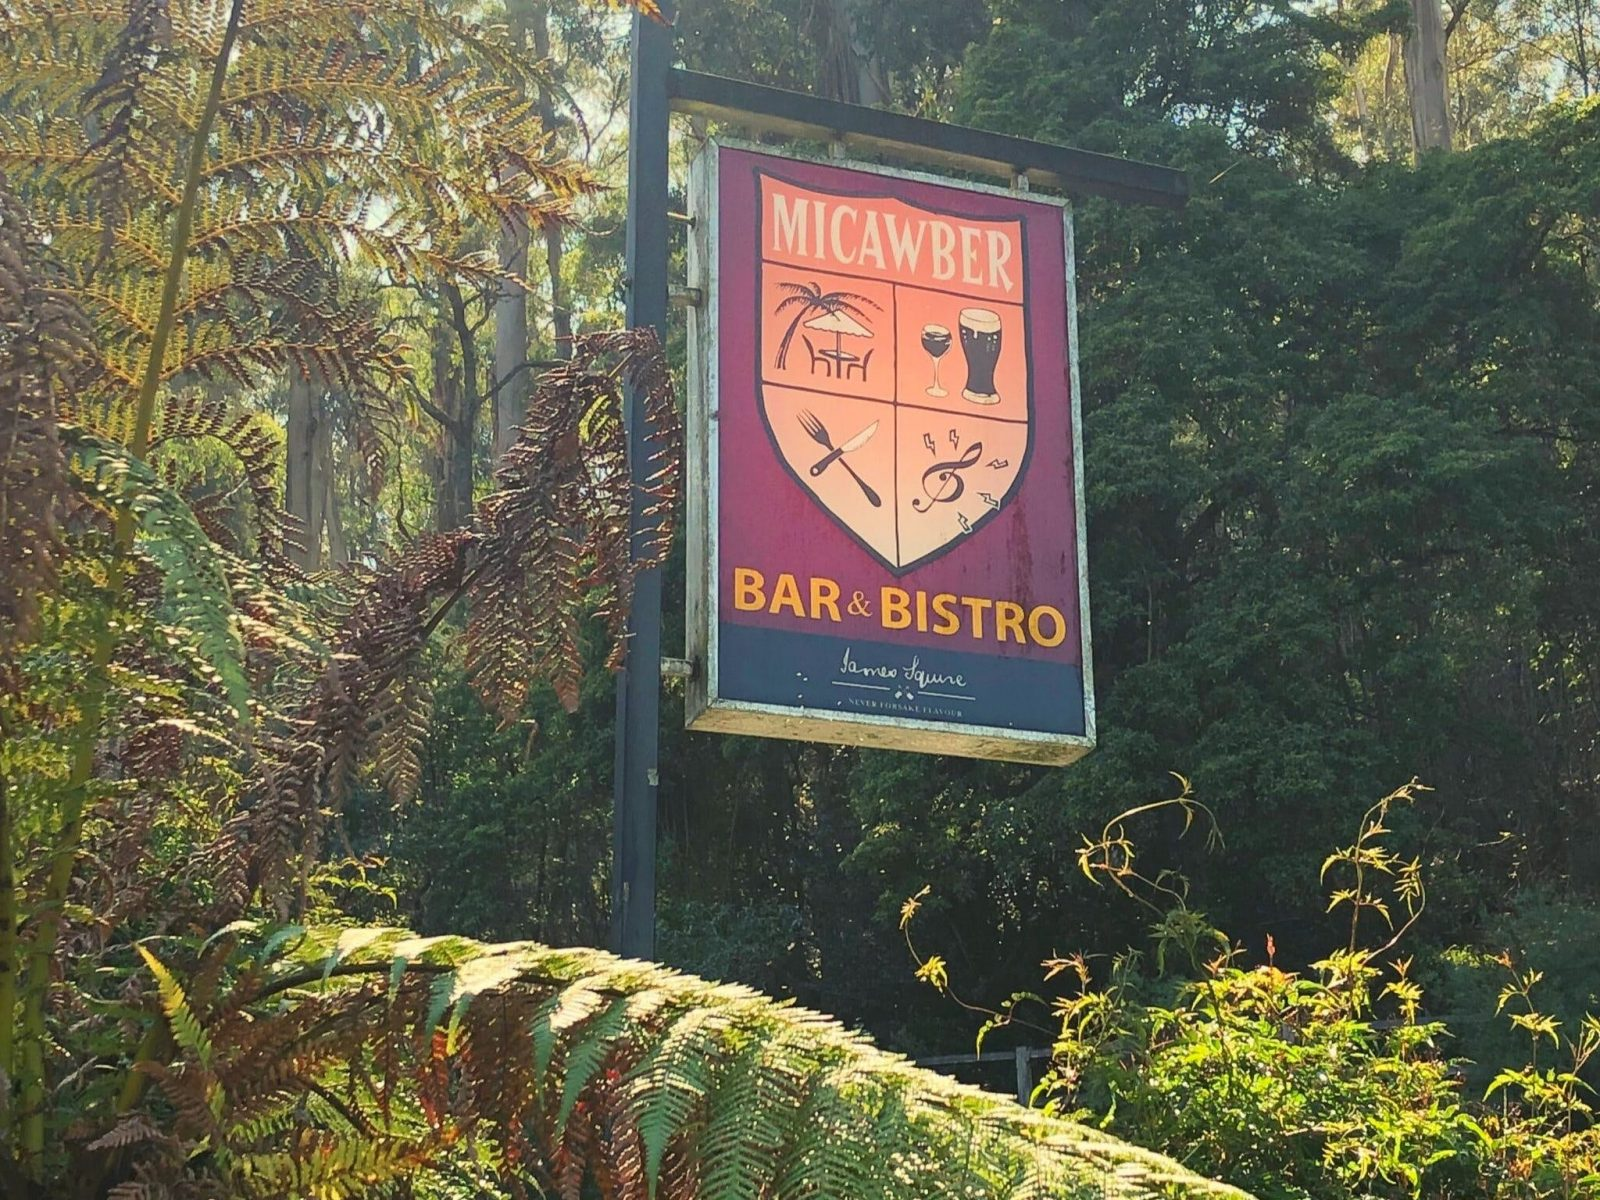 Micawber Tavern - Belgrave only a short drive from the township of Belgrave